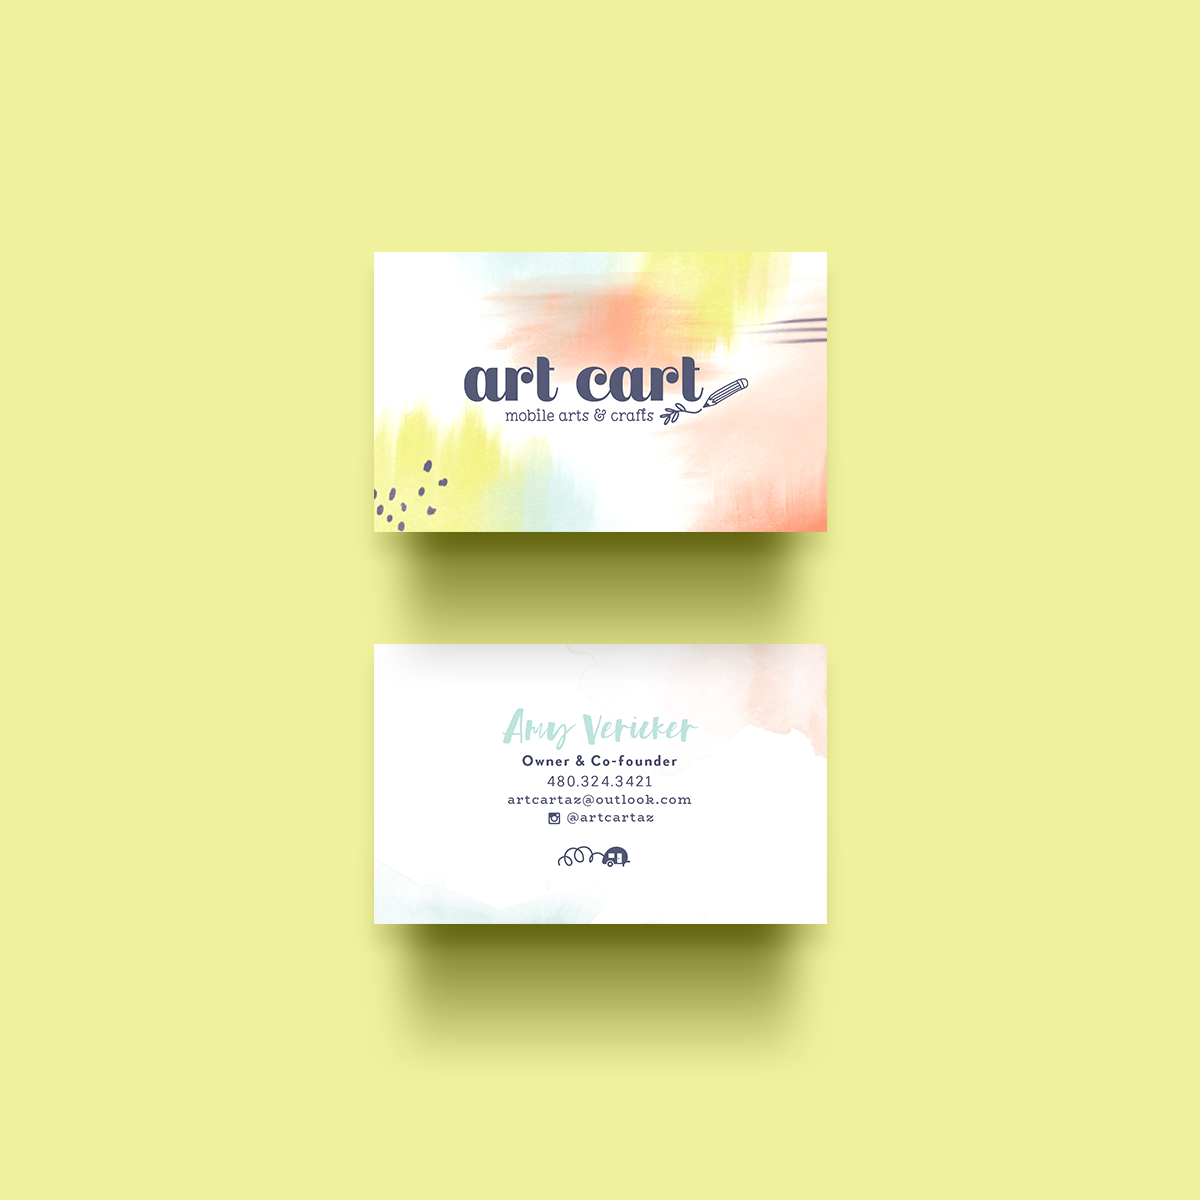 Art Cart business cards by Pace Creative Design Studio